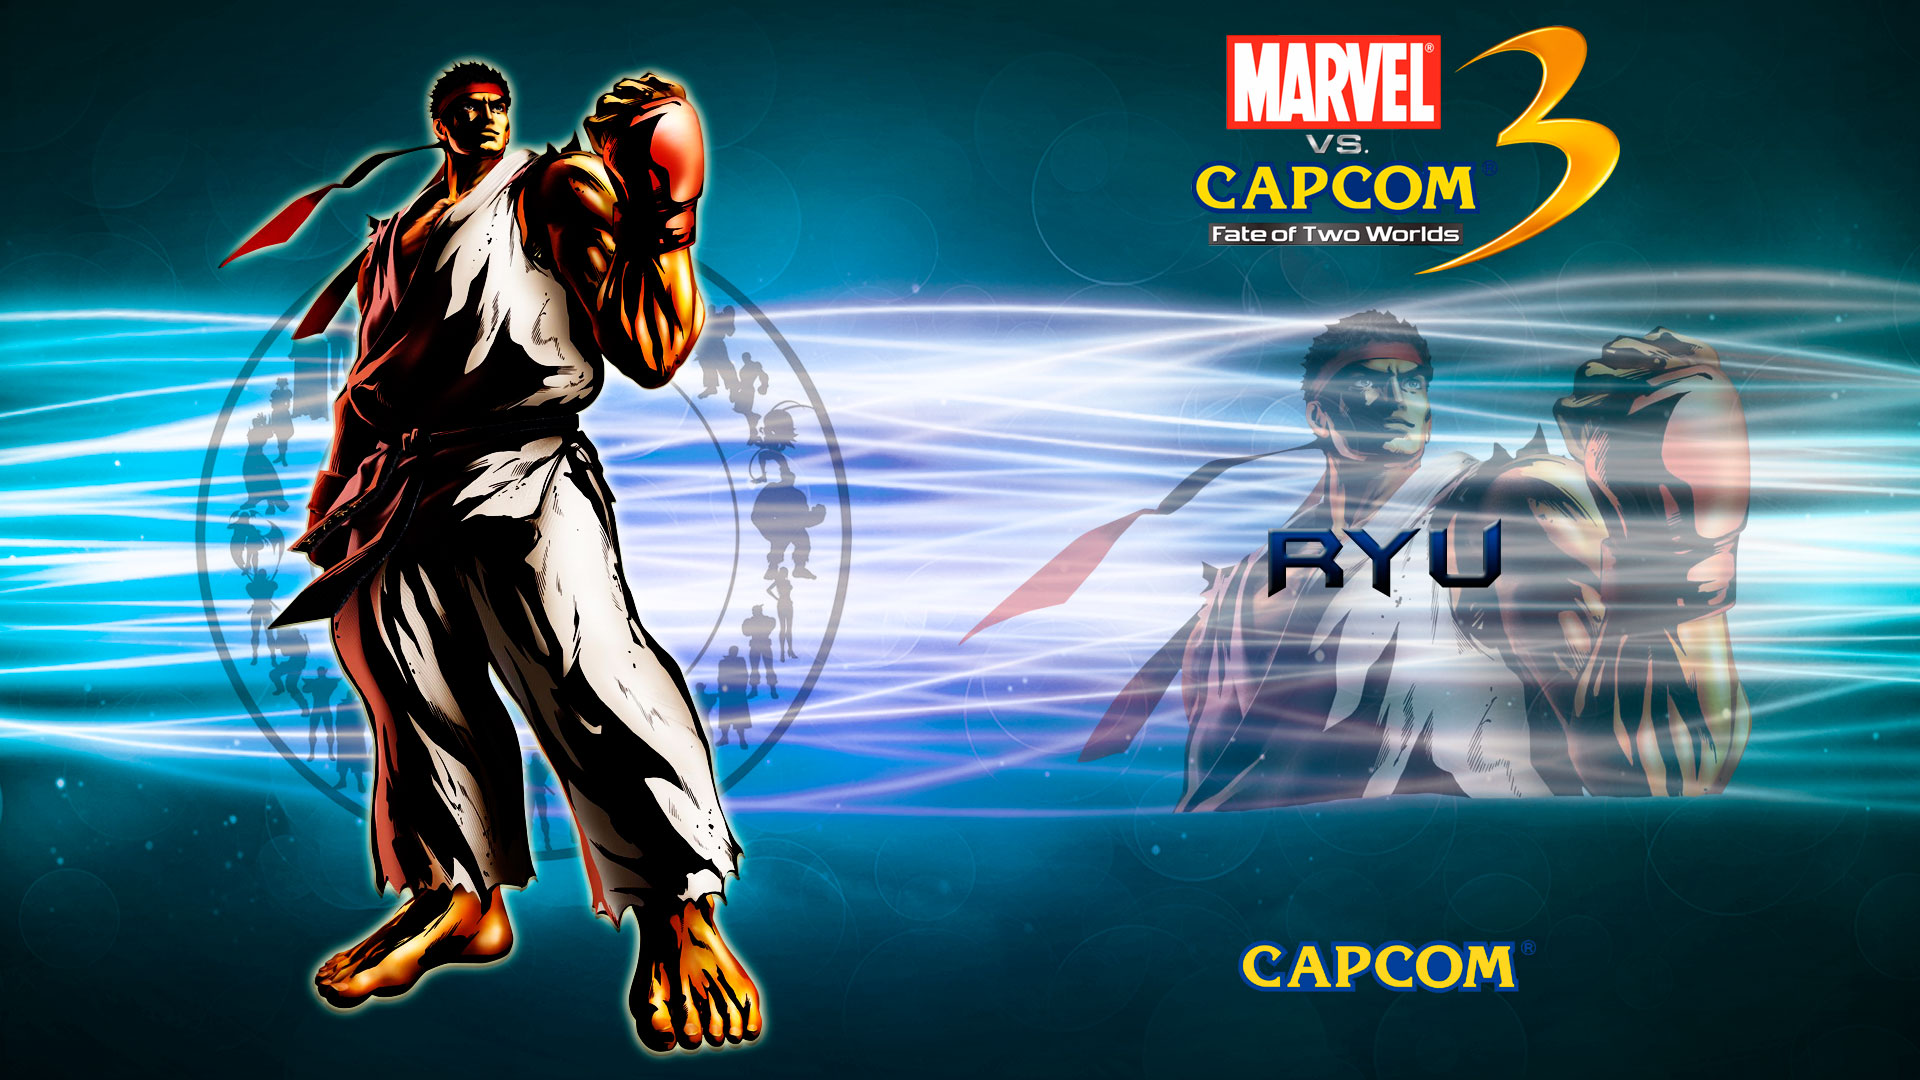 Marvel vs Capcom 3 1080p Wallpaper 1920x1080